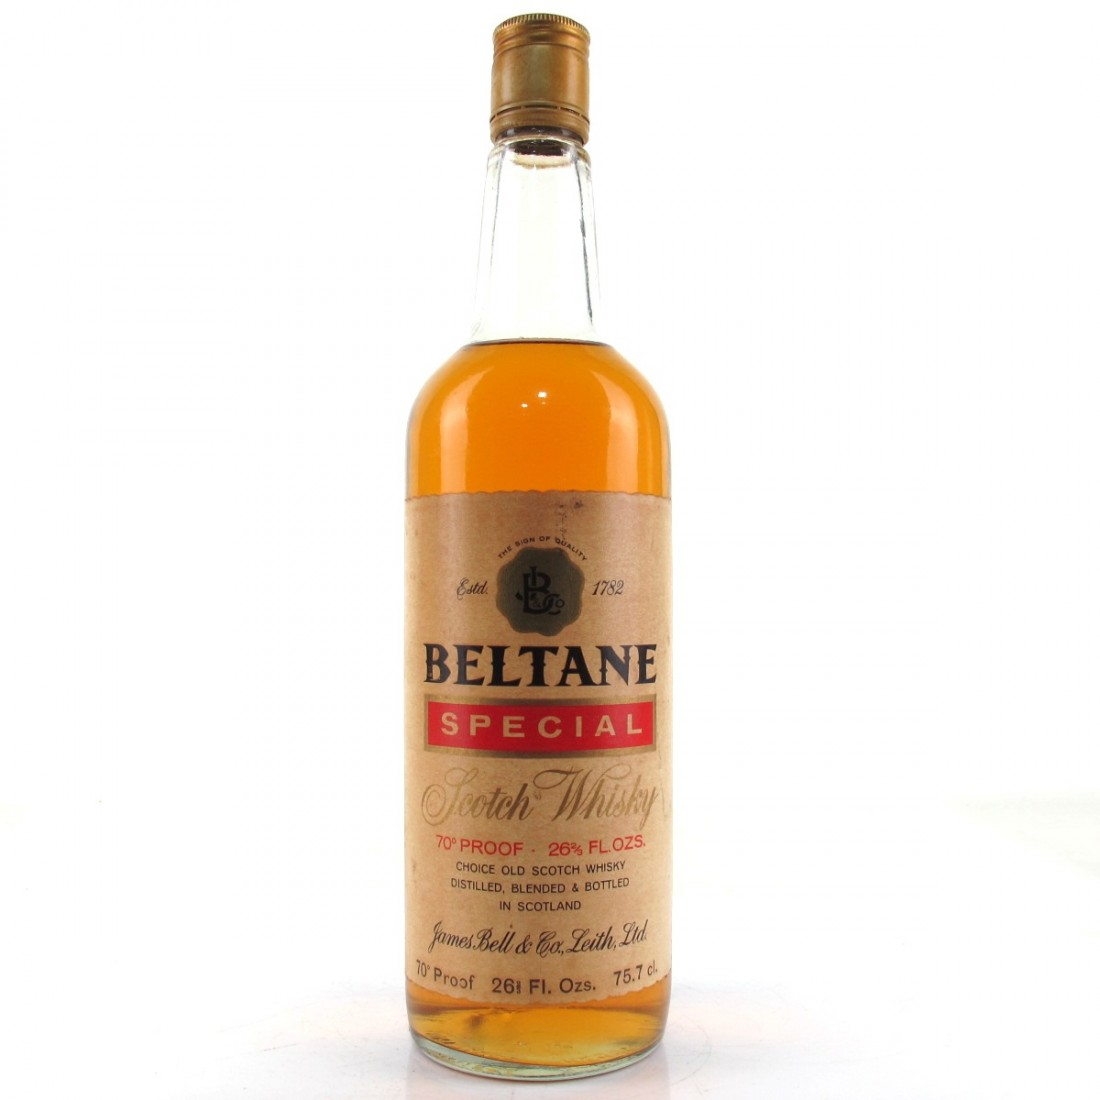 Beltane Special Scotch Whisky 1970s